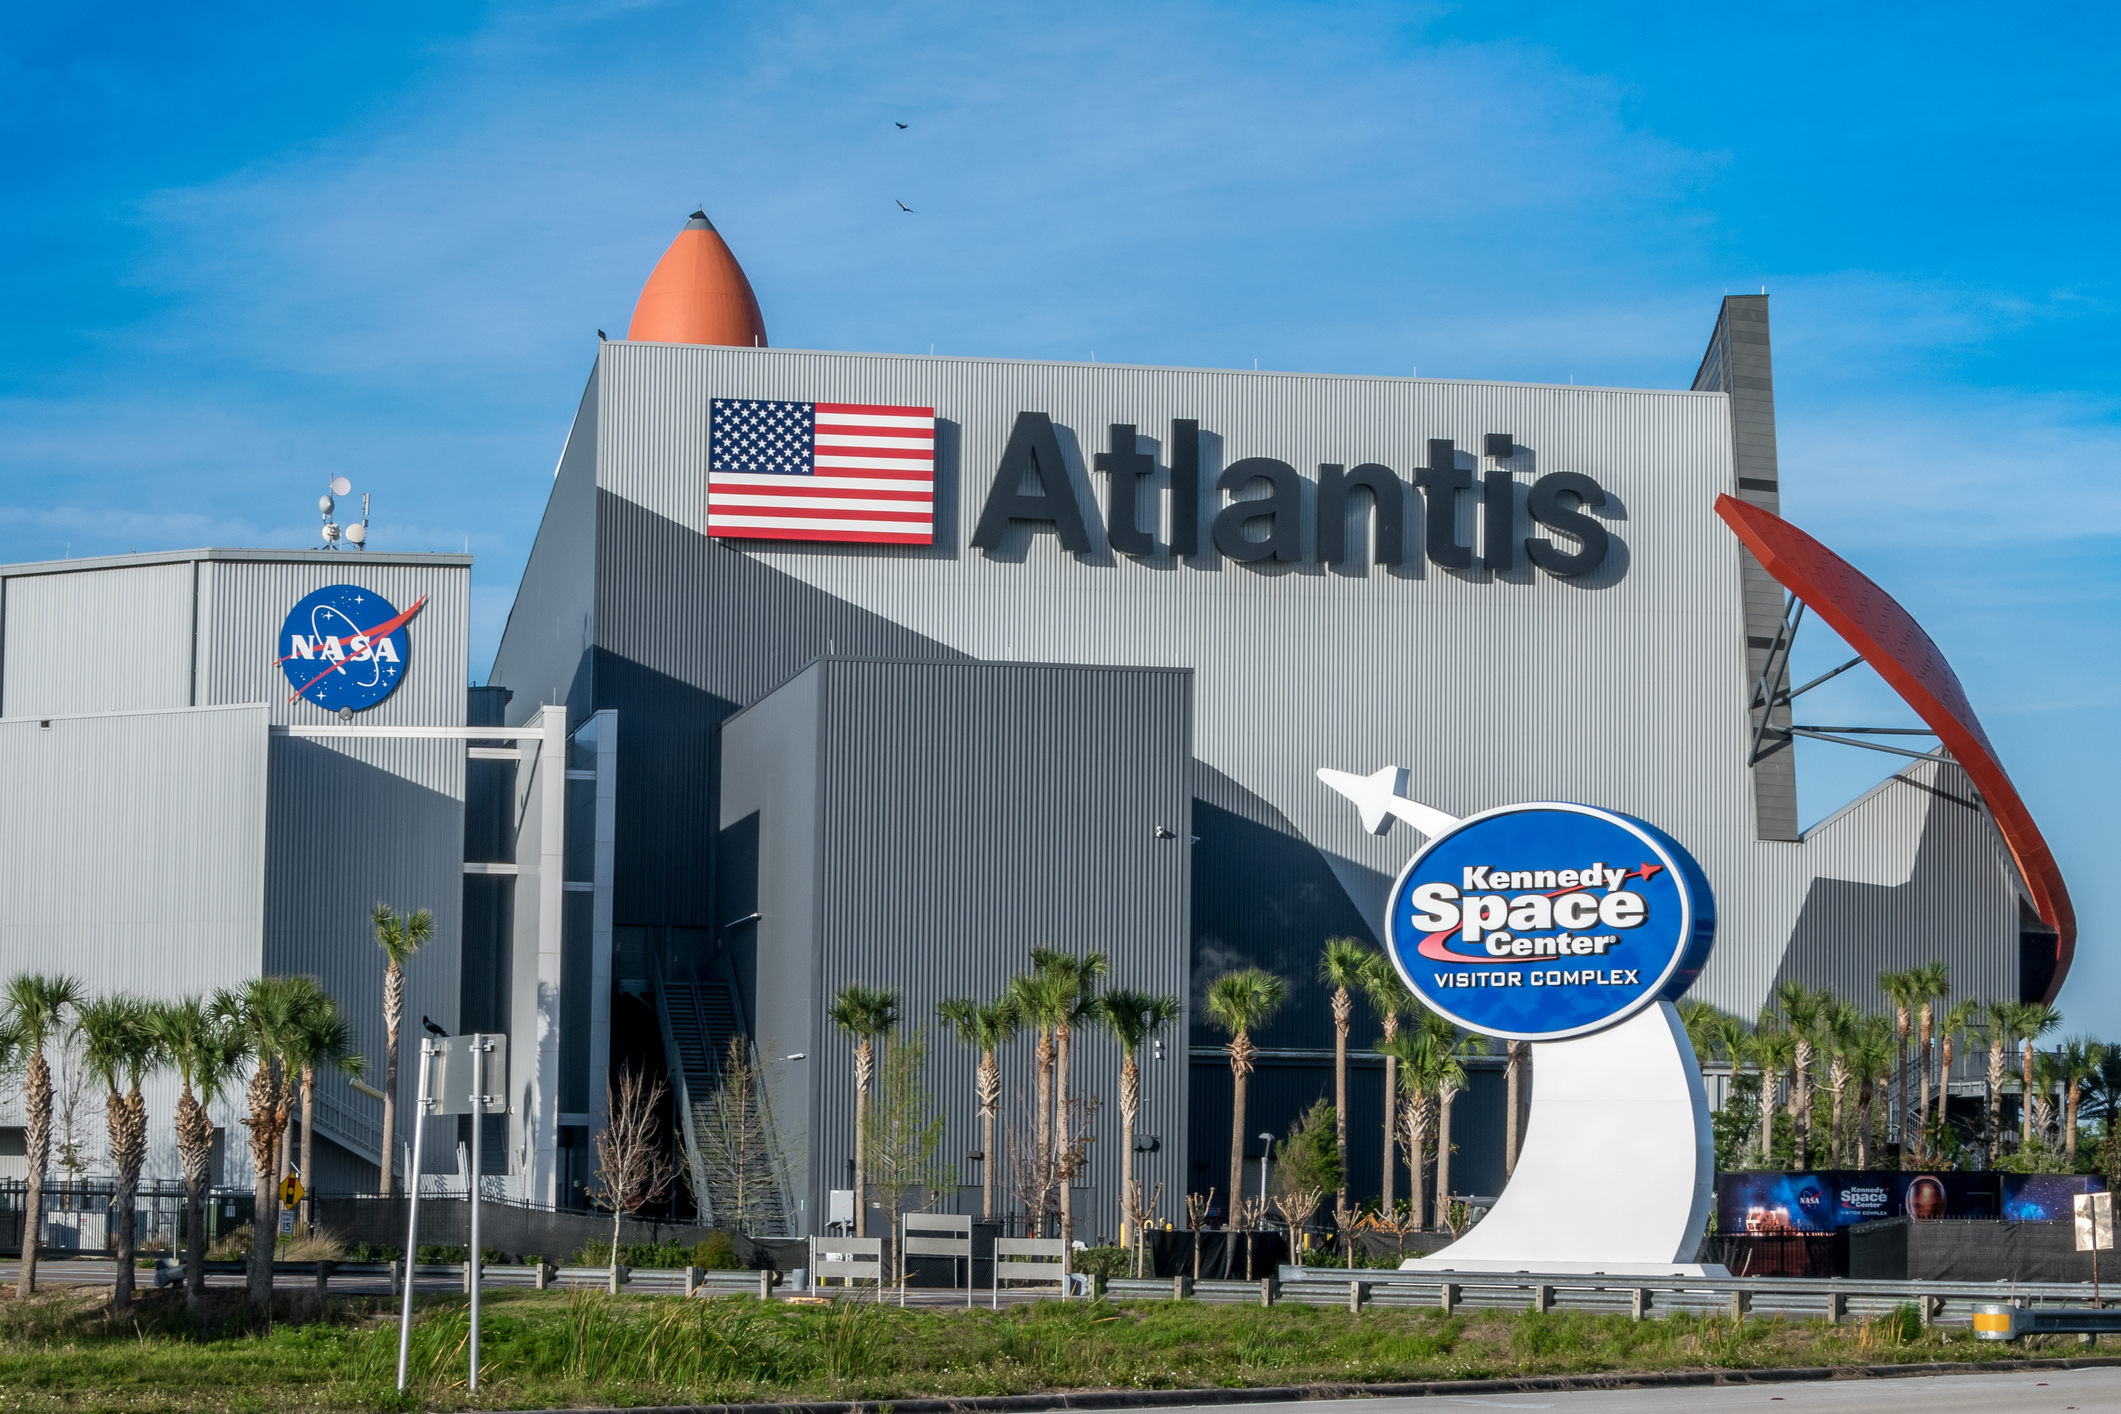 Kennedy-Space-Center-Visitors-Complex.jpg?mtime=20190509110206#asset:105755